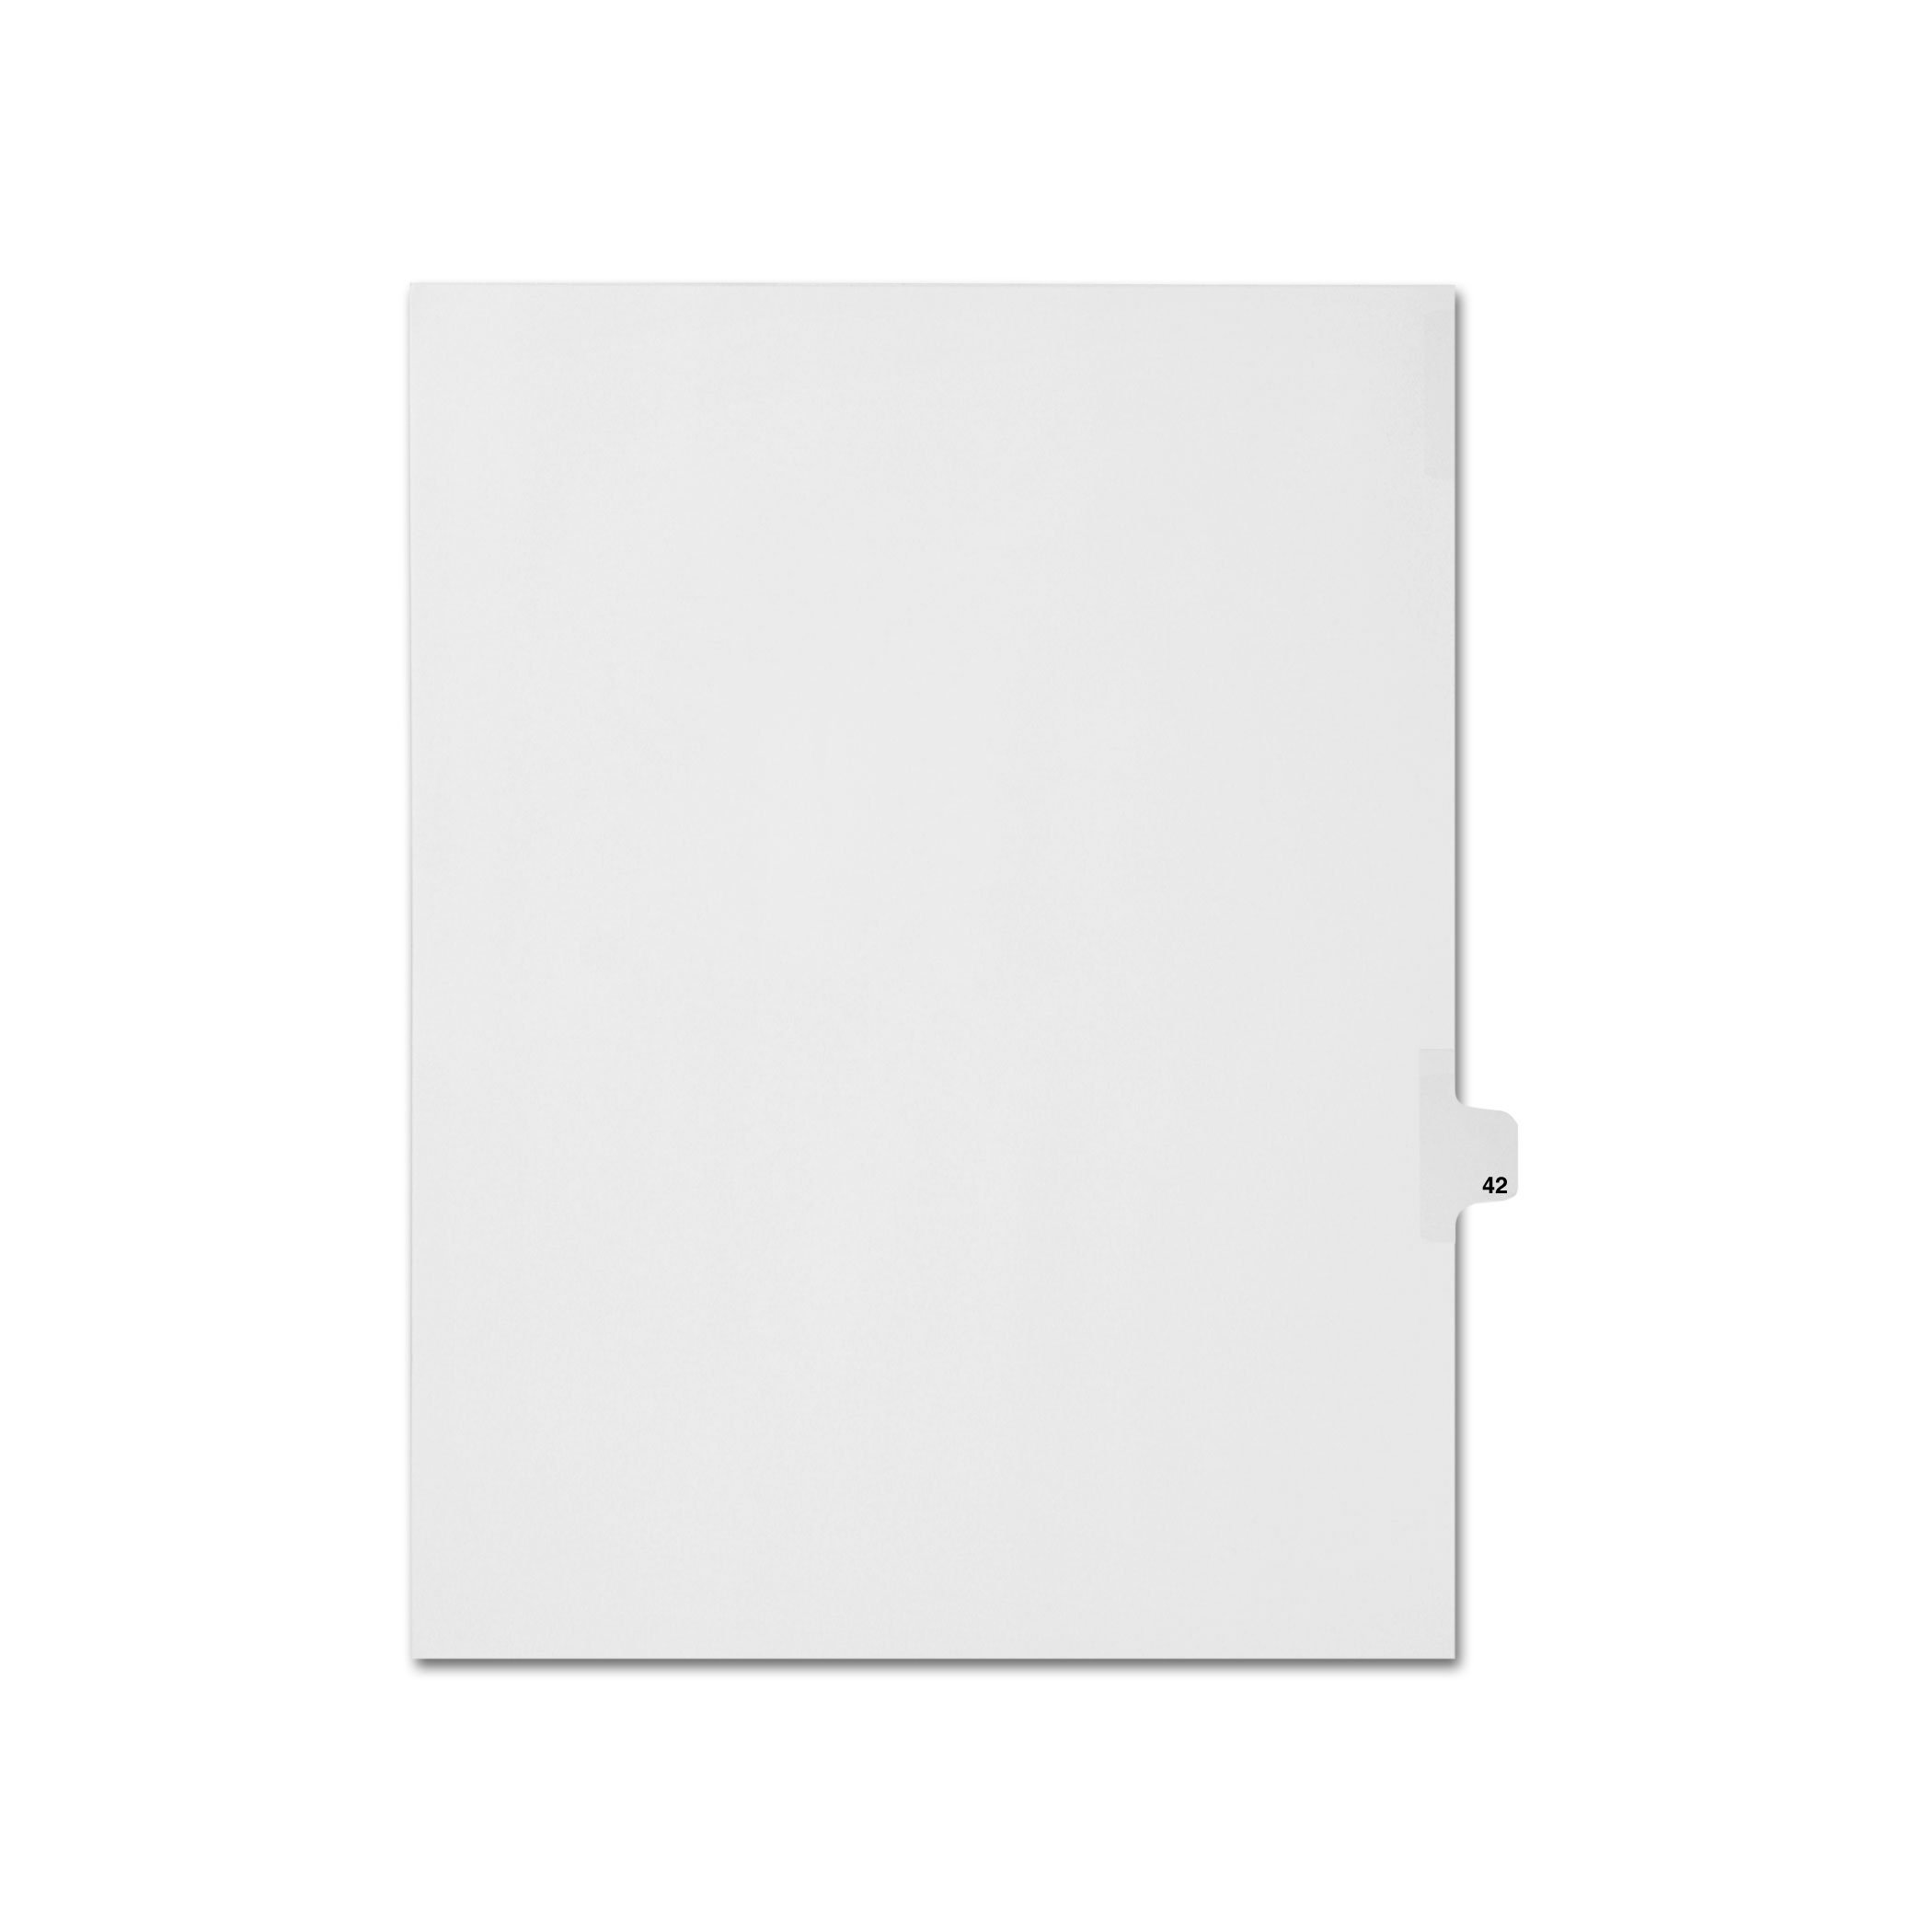 AMZfiling Individual Legal Index Tab Dividers, Compatible with Avery- Number 42, Letter Size, White, Side Tabs, Position 17 (25 Sheets/pkg)